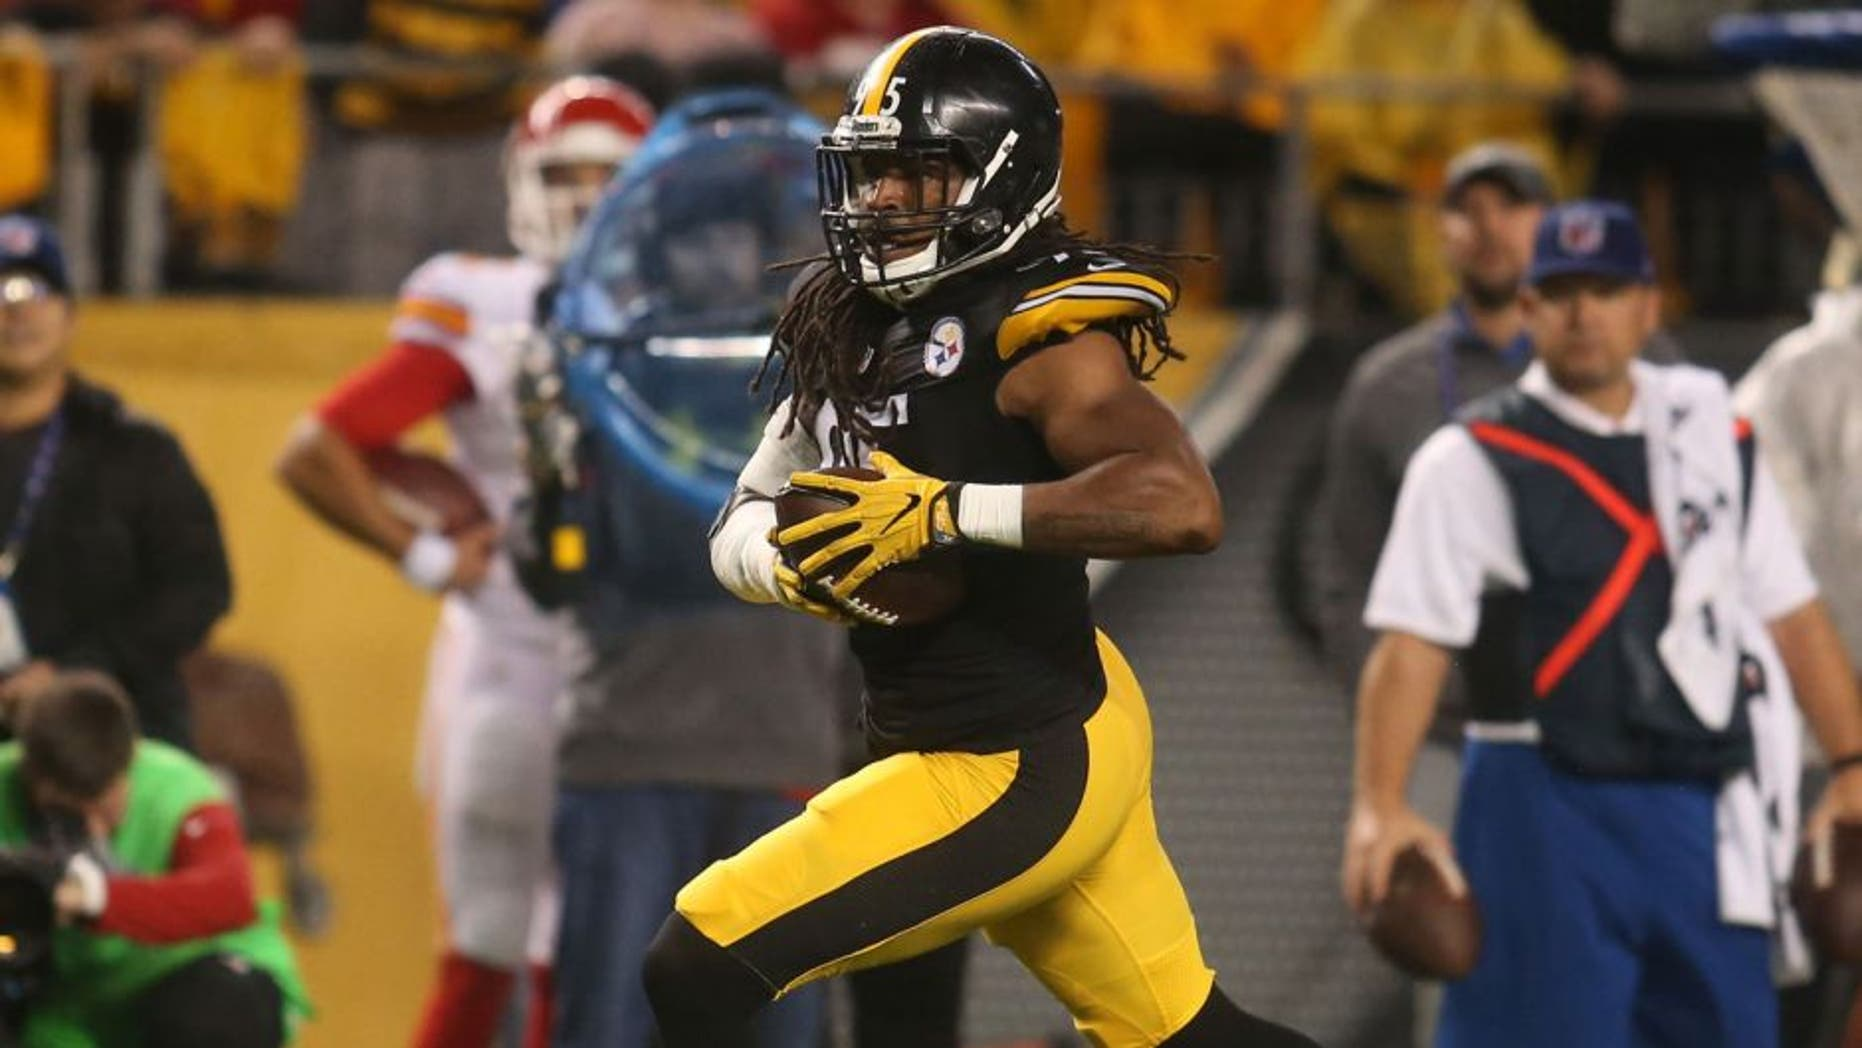 Oct 2, 2016; Pittsburgh, PA, USA; Pittsburgh Steelers outside linebacker Jarvis Jones (95) returns an interception against the Kansas City Chiefs during the first quarter at Heinz Field. Mandatory Credit: Charles LeClaire-USA TODAY Sports